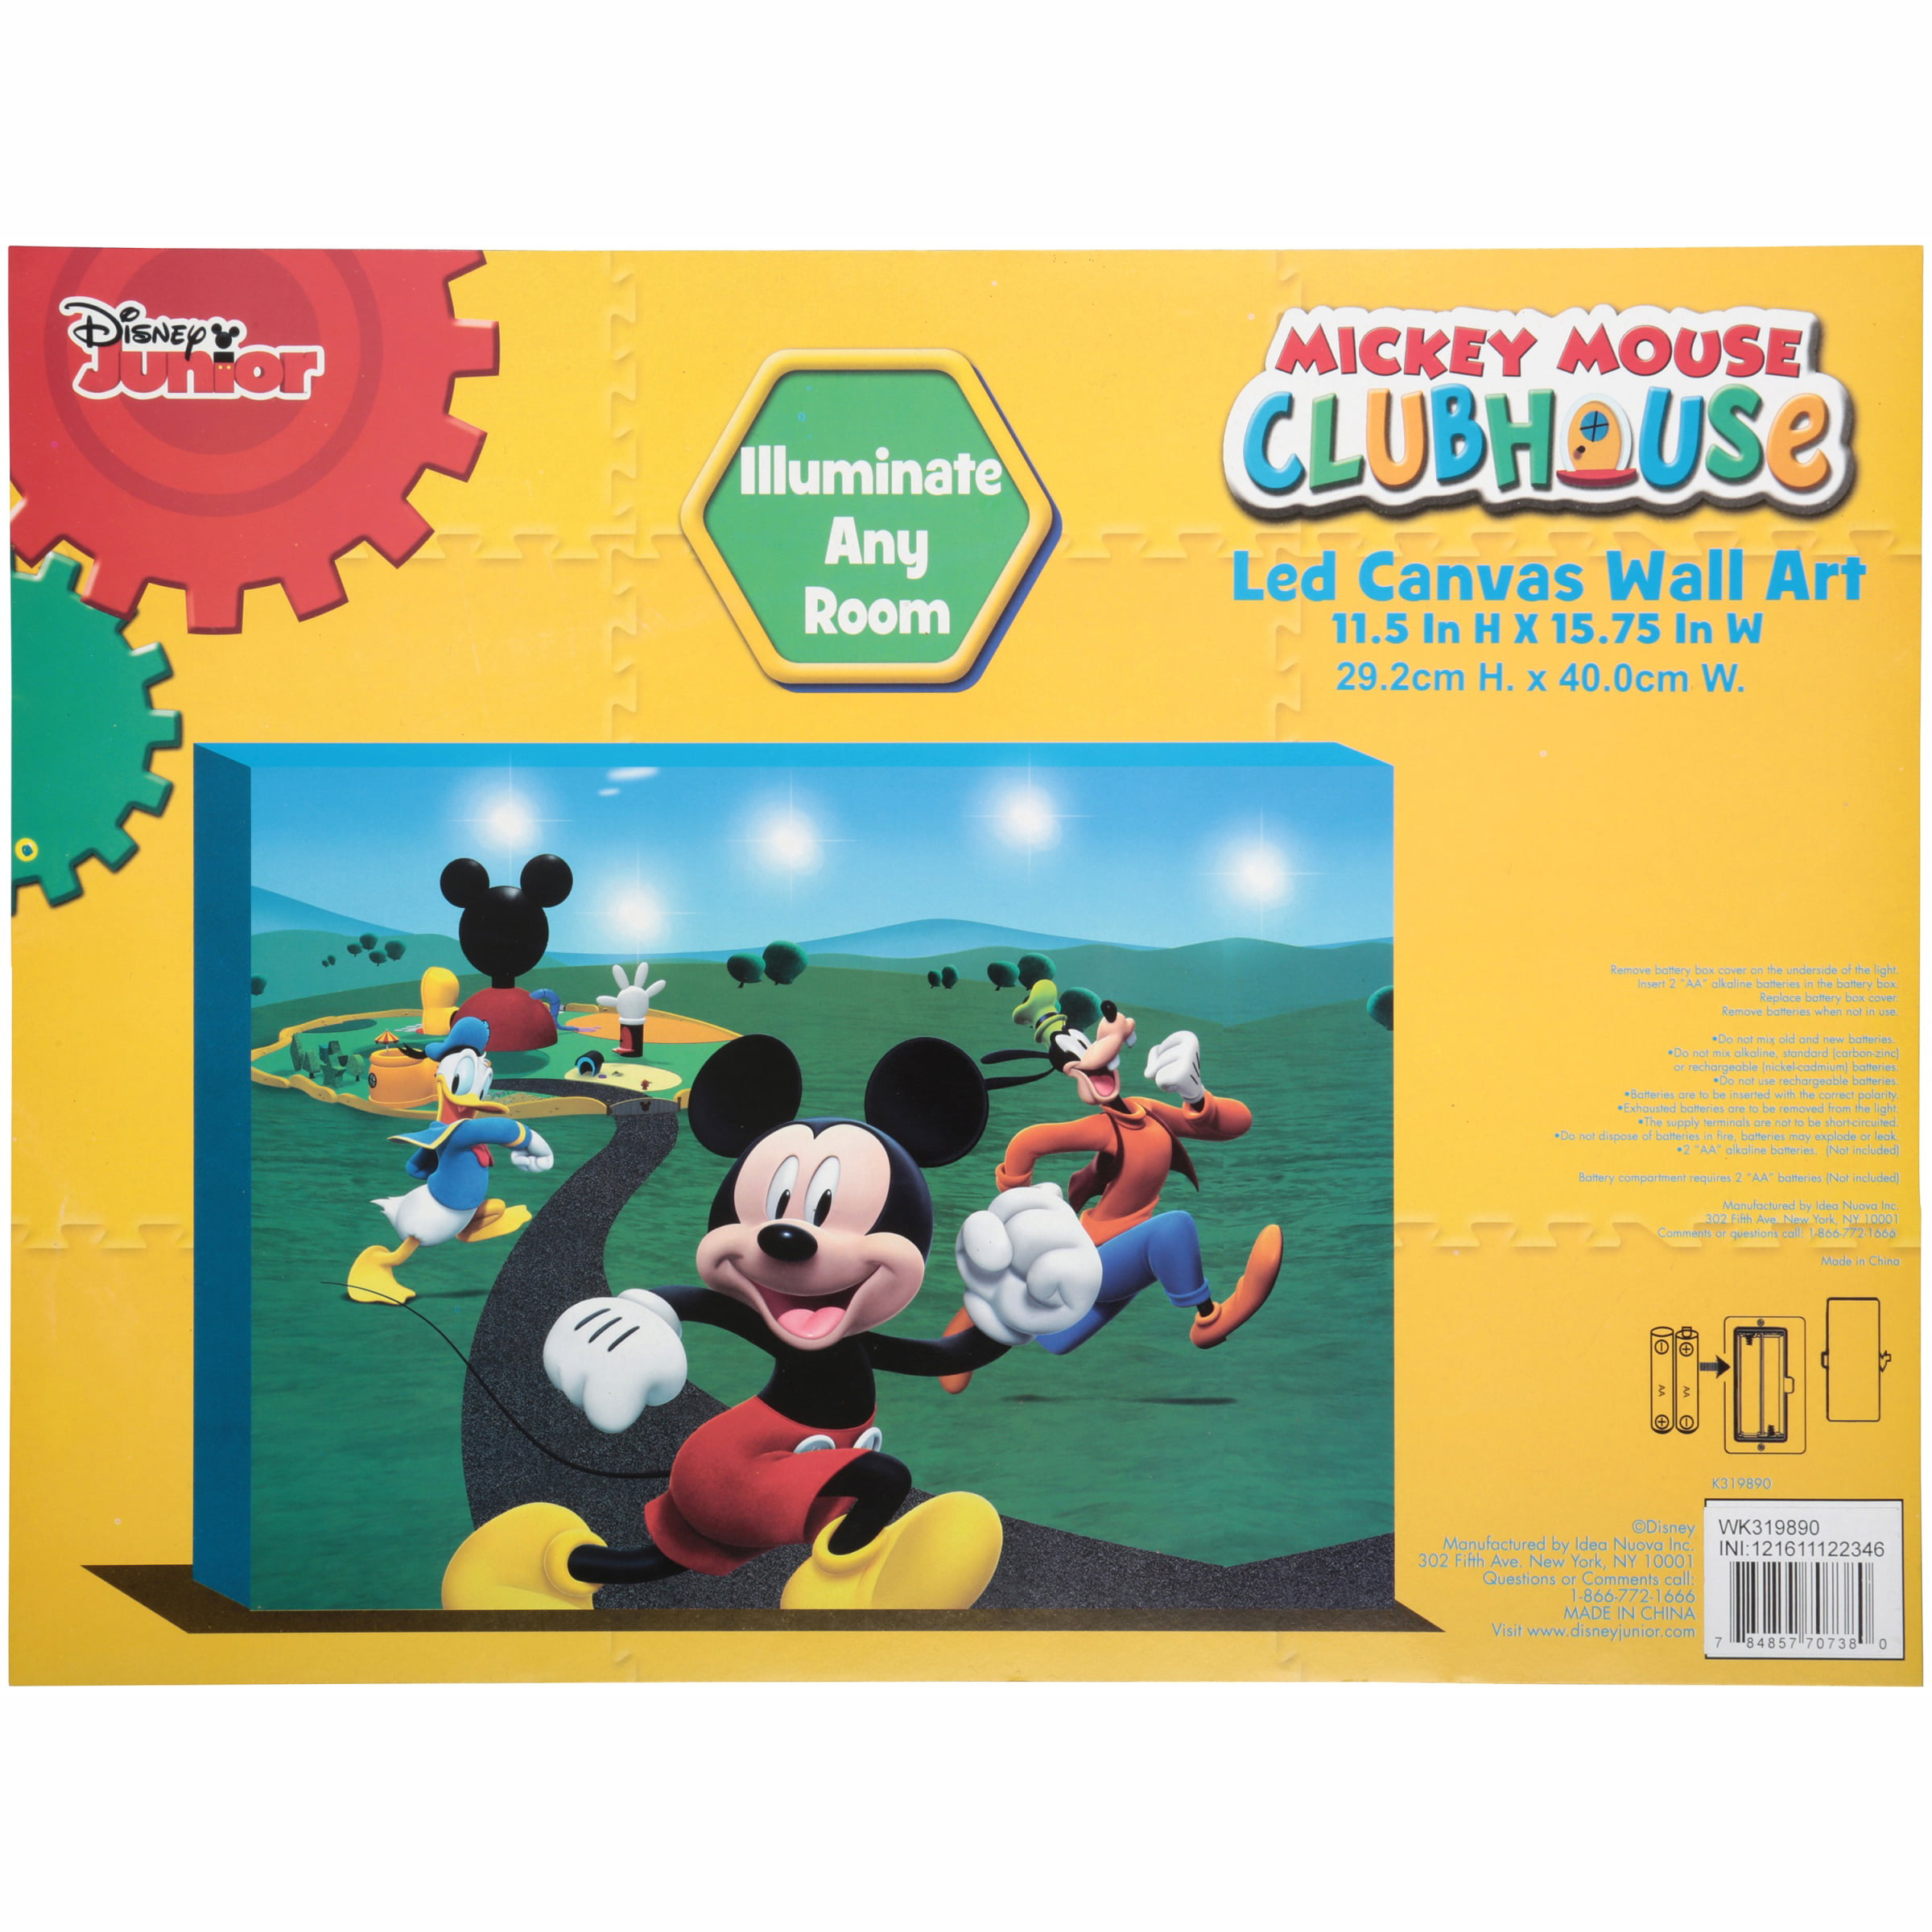 Disney Junior Mickey Mouse Clubhouse LED Canvas Wall Art - Walmart.com